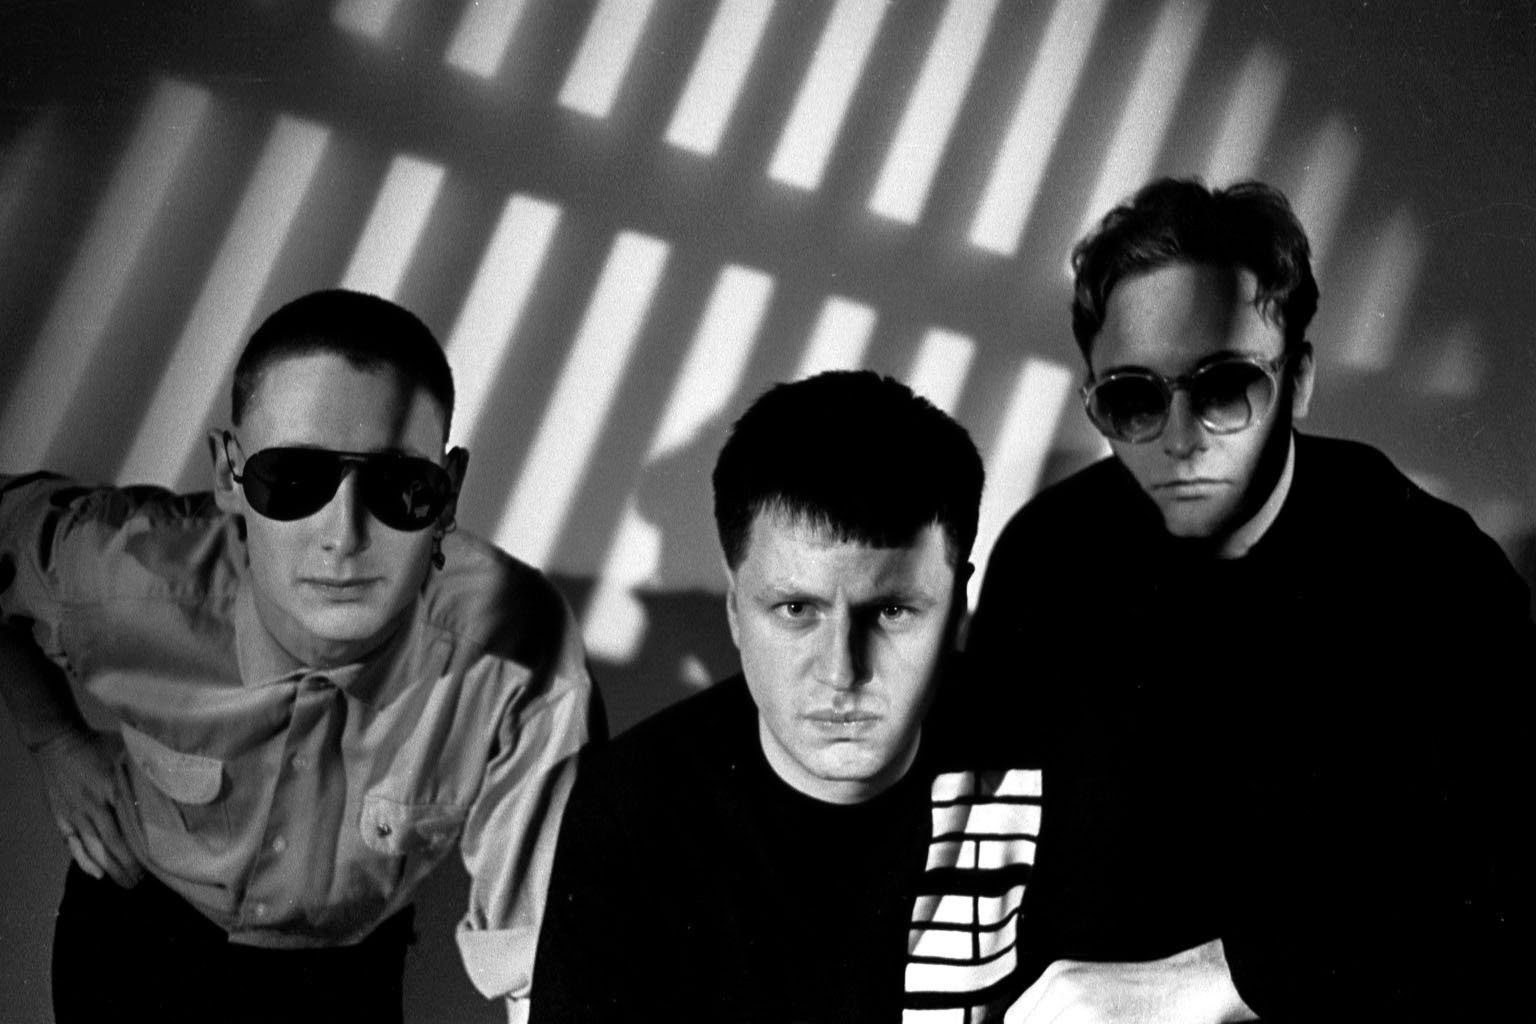 Watch this hour long Documentary on Front 242!